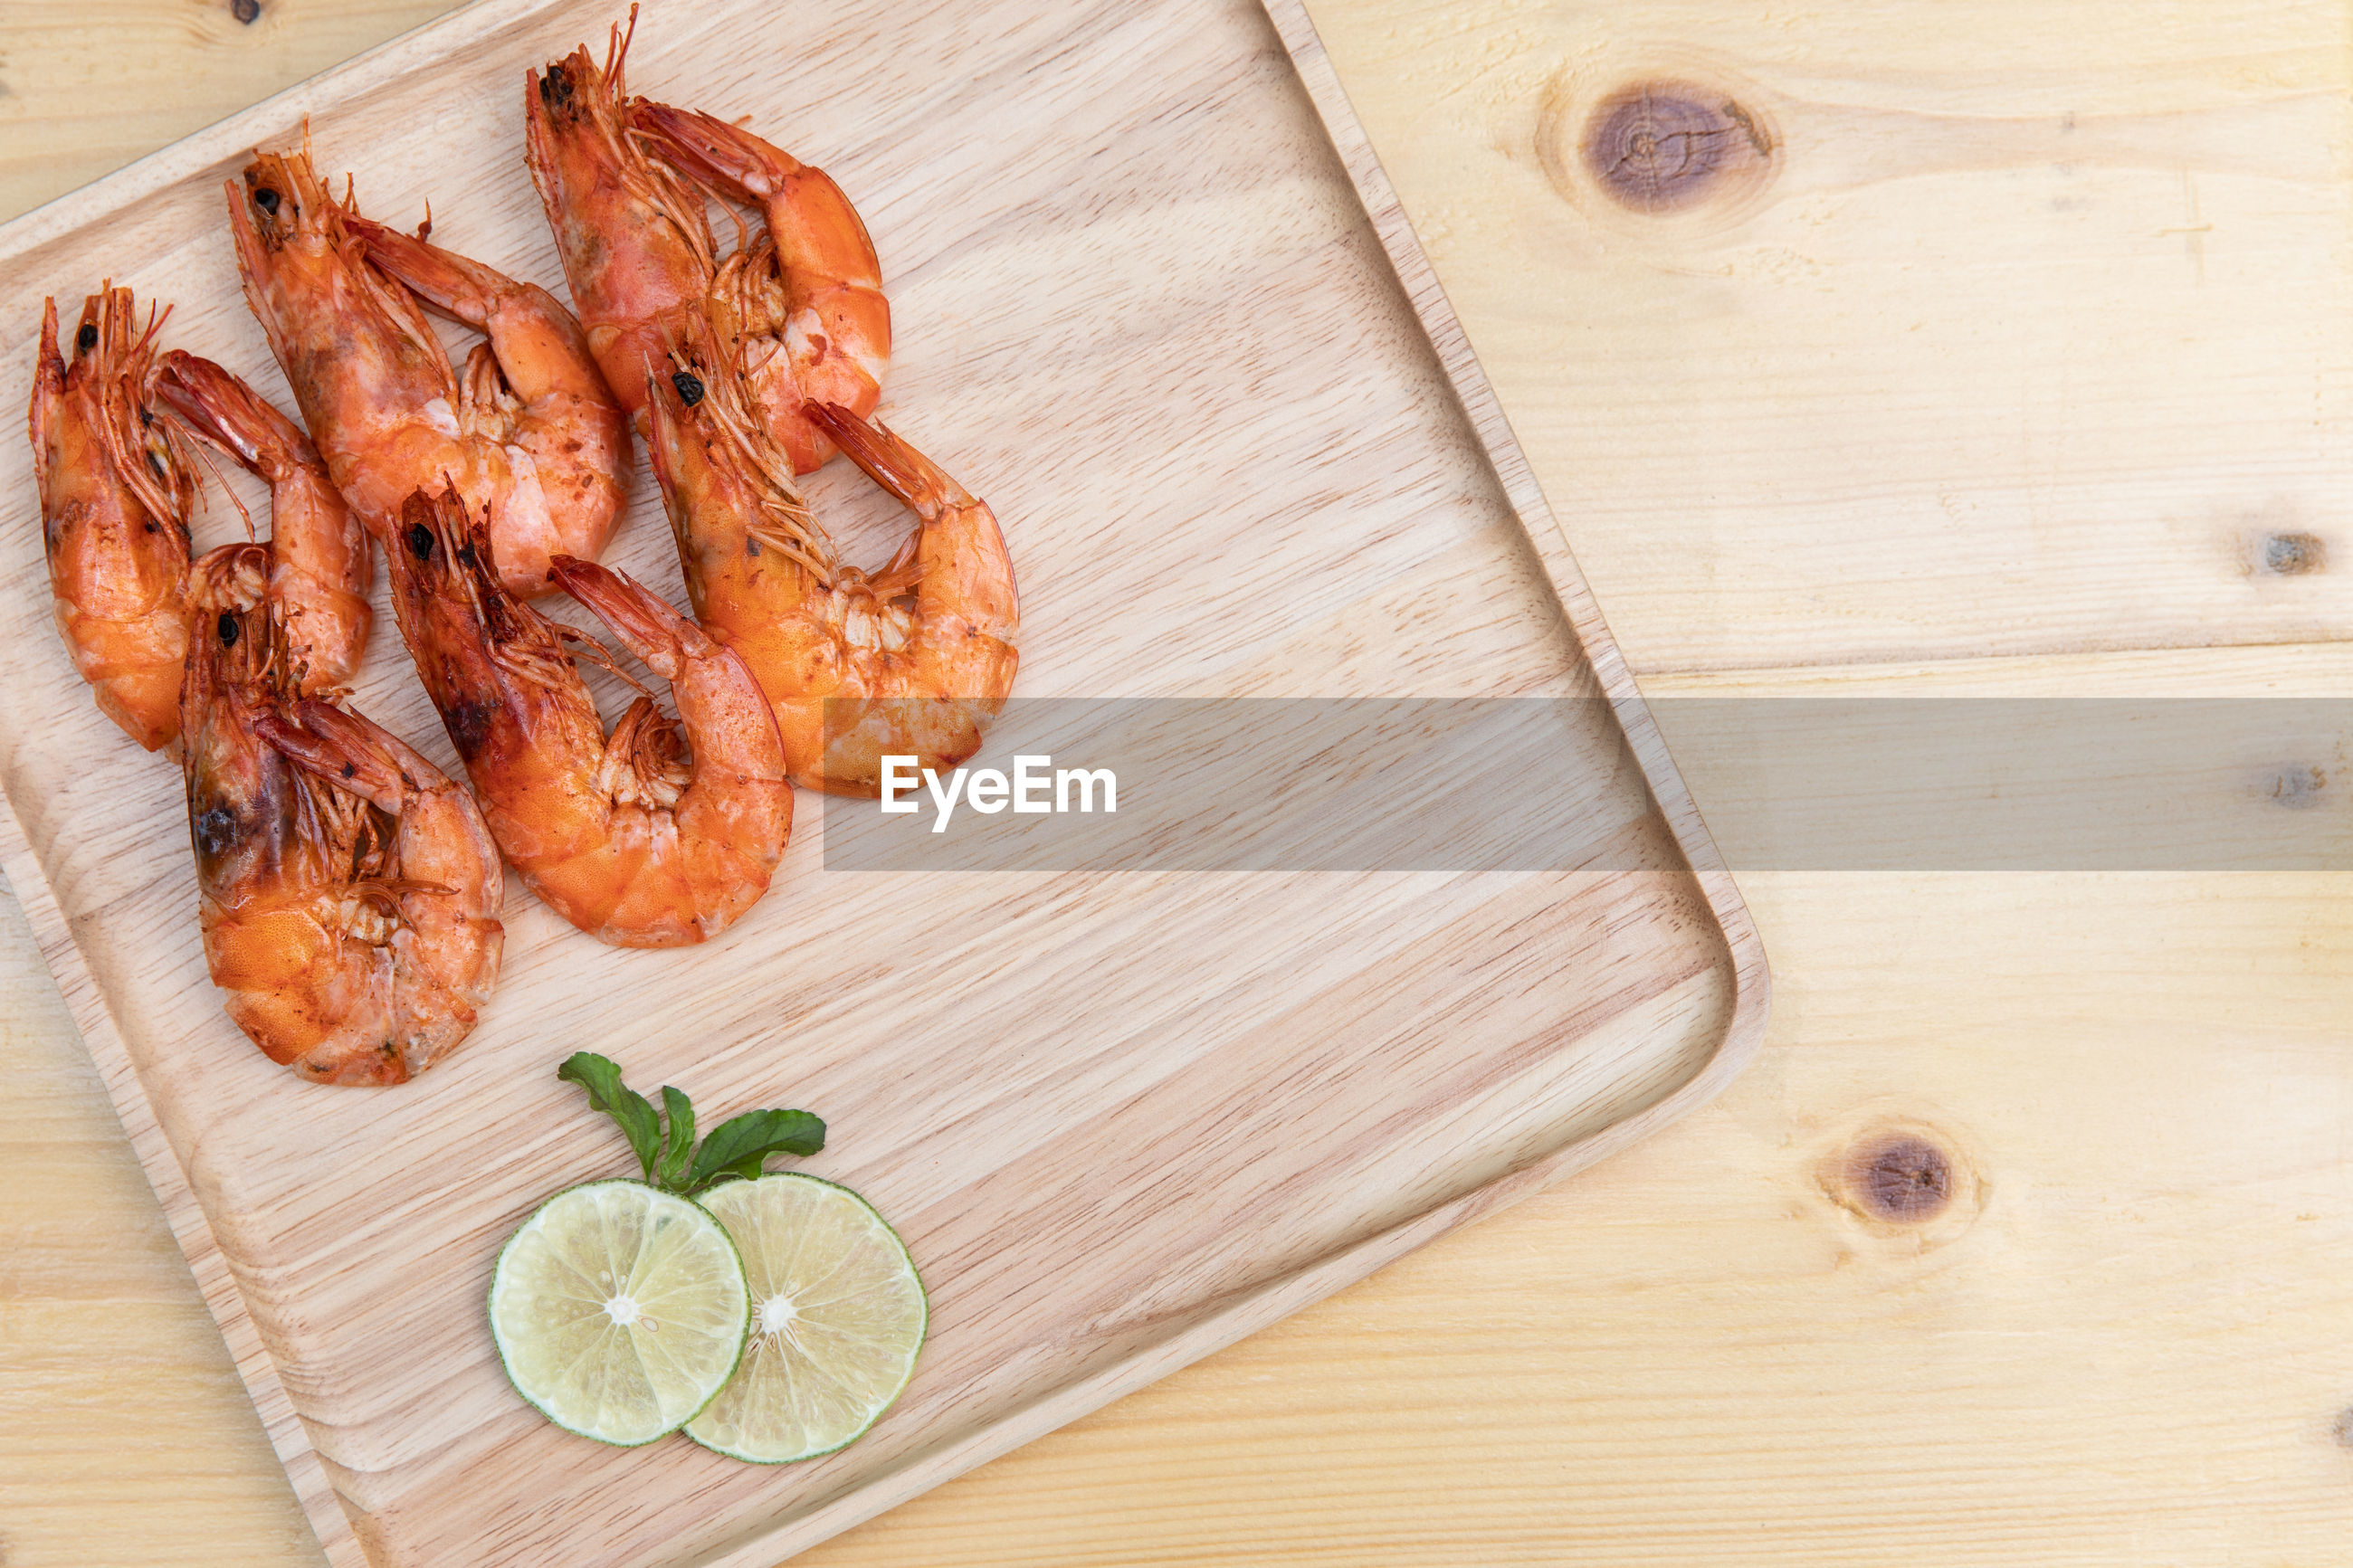 High angle view of seafood on cutting board